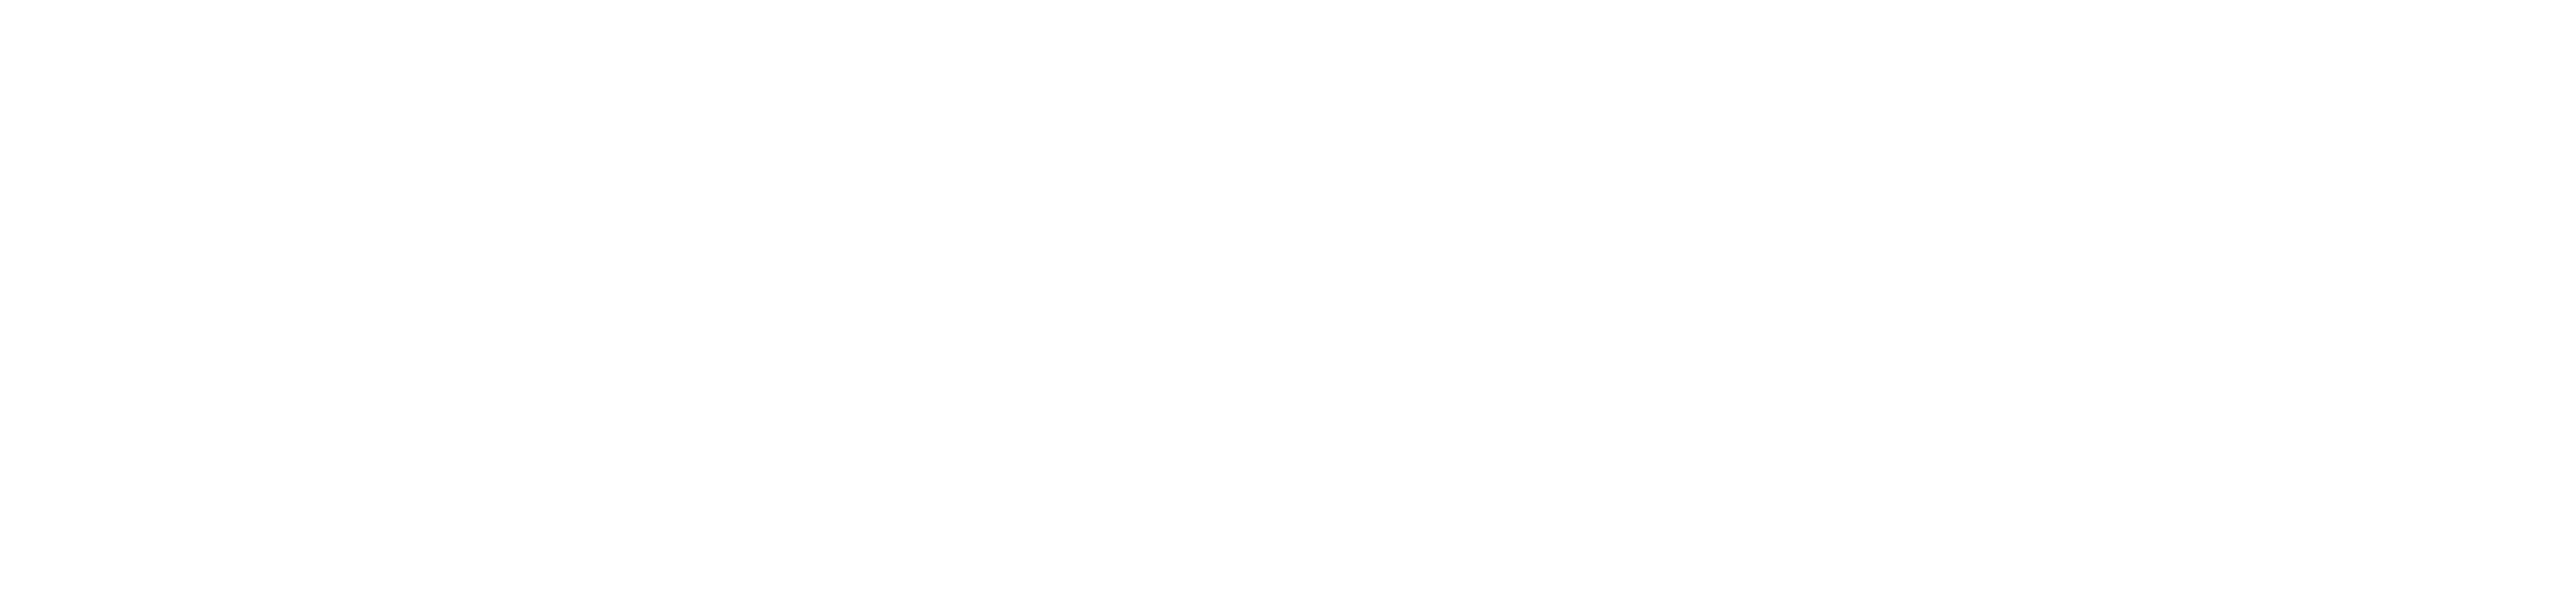 Port Agencies Amsterdam Logo